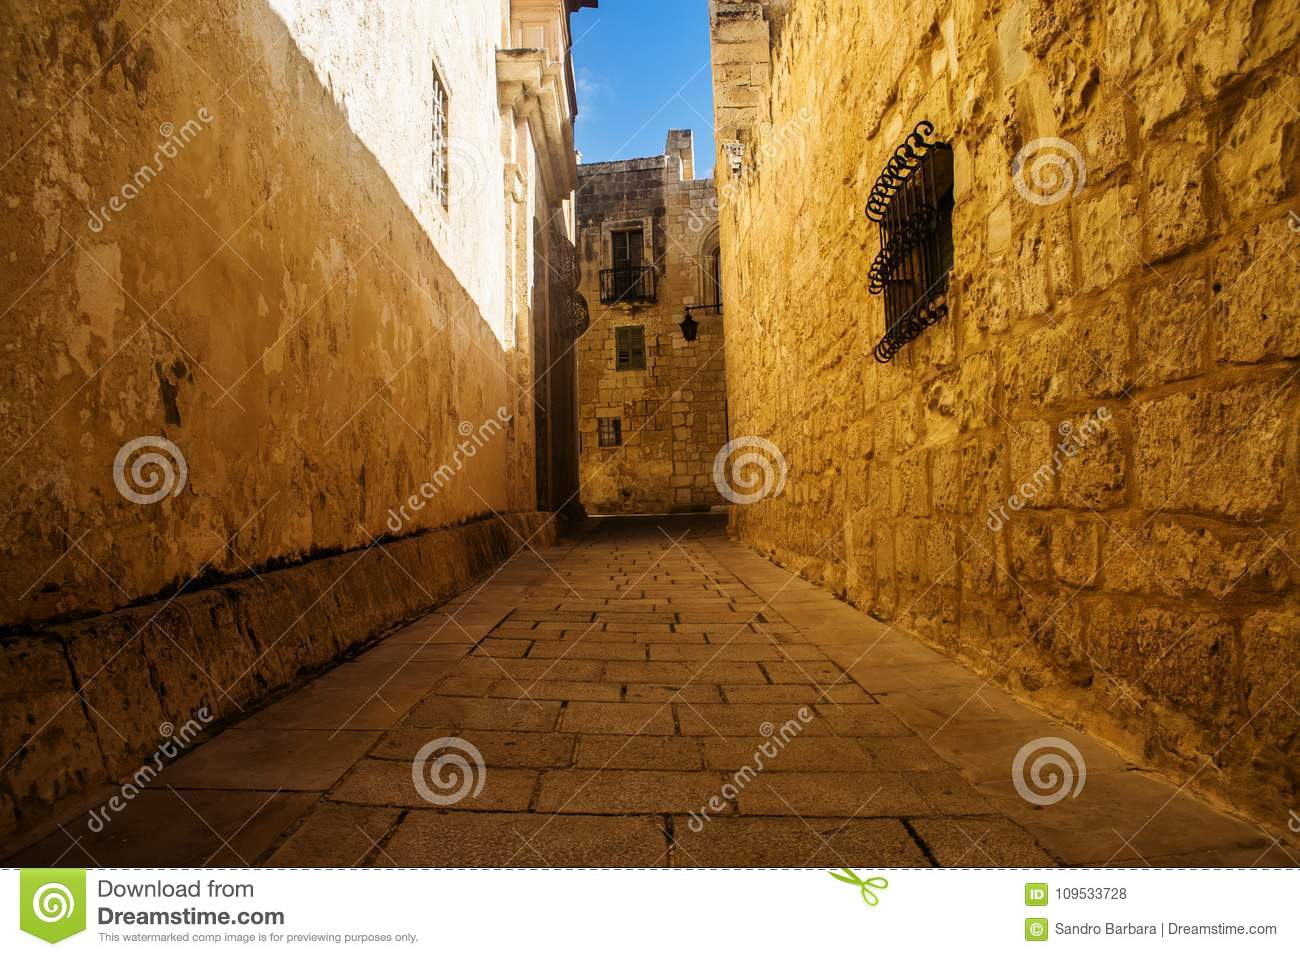 The Golden Road in Mdina